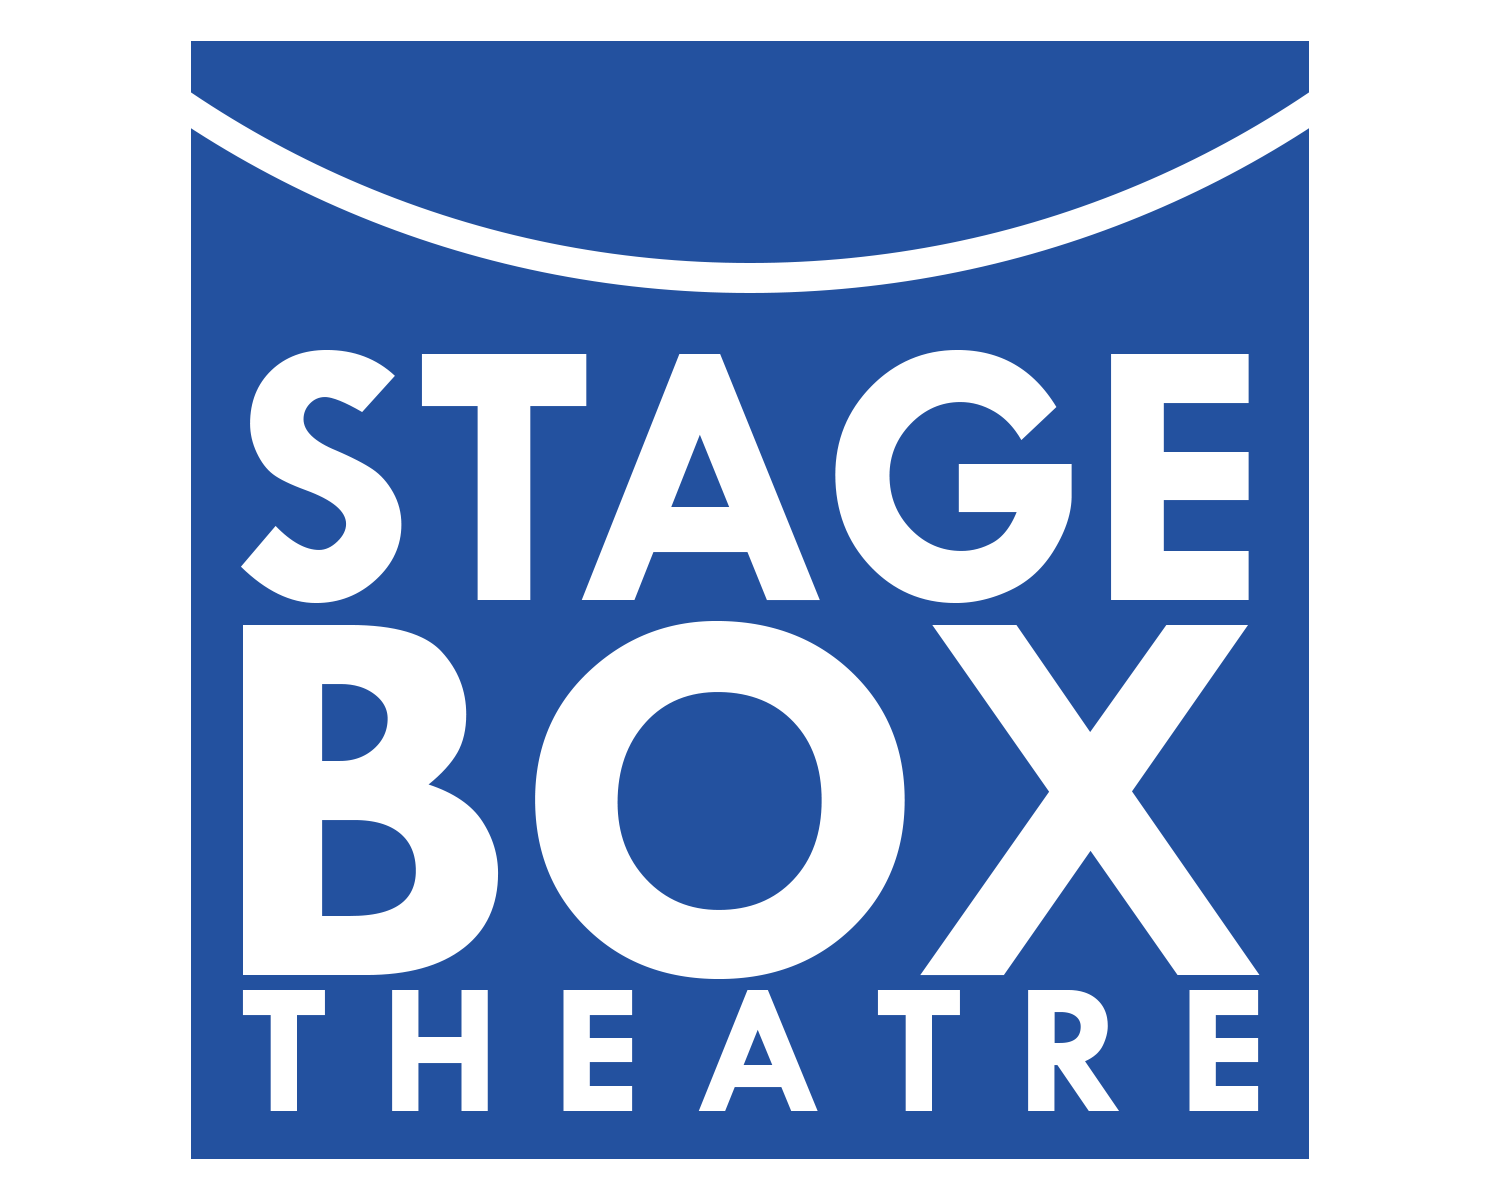 StageBox Theatre